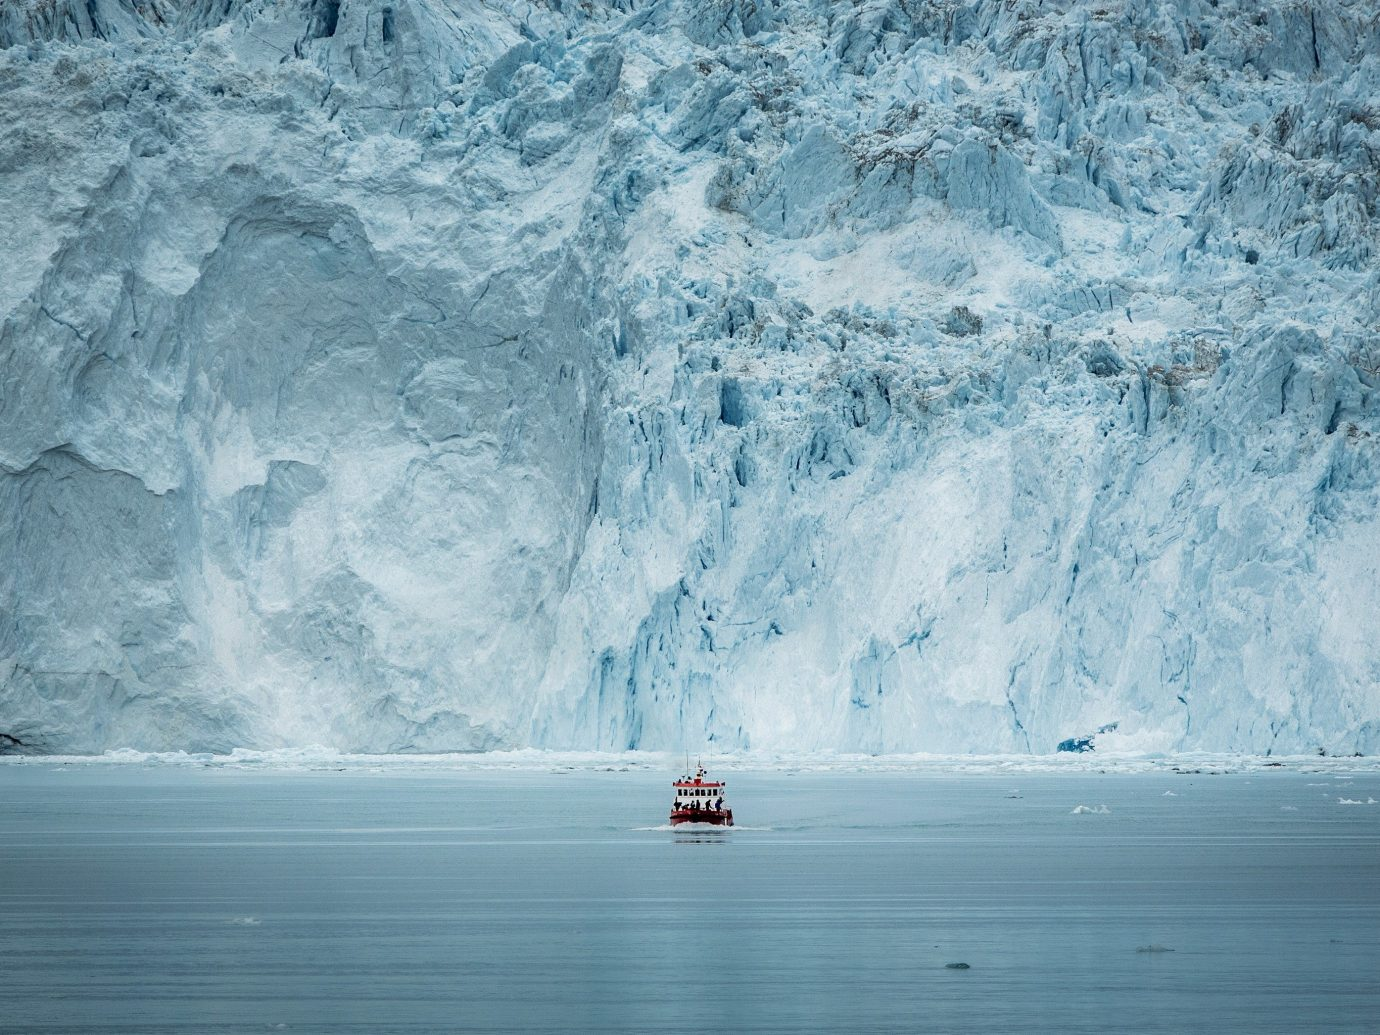 A small passenger boat crosses the Eqip glacier